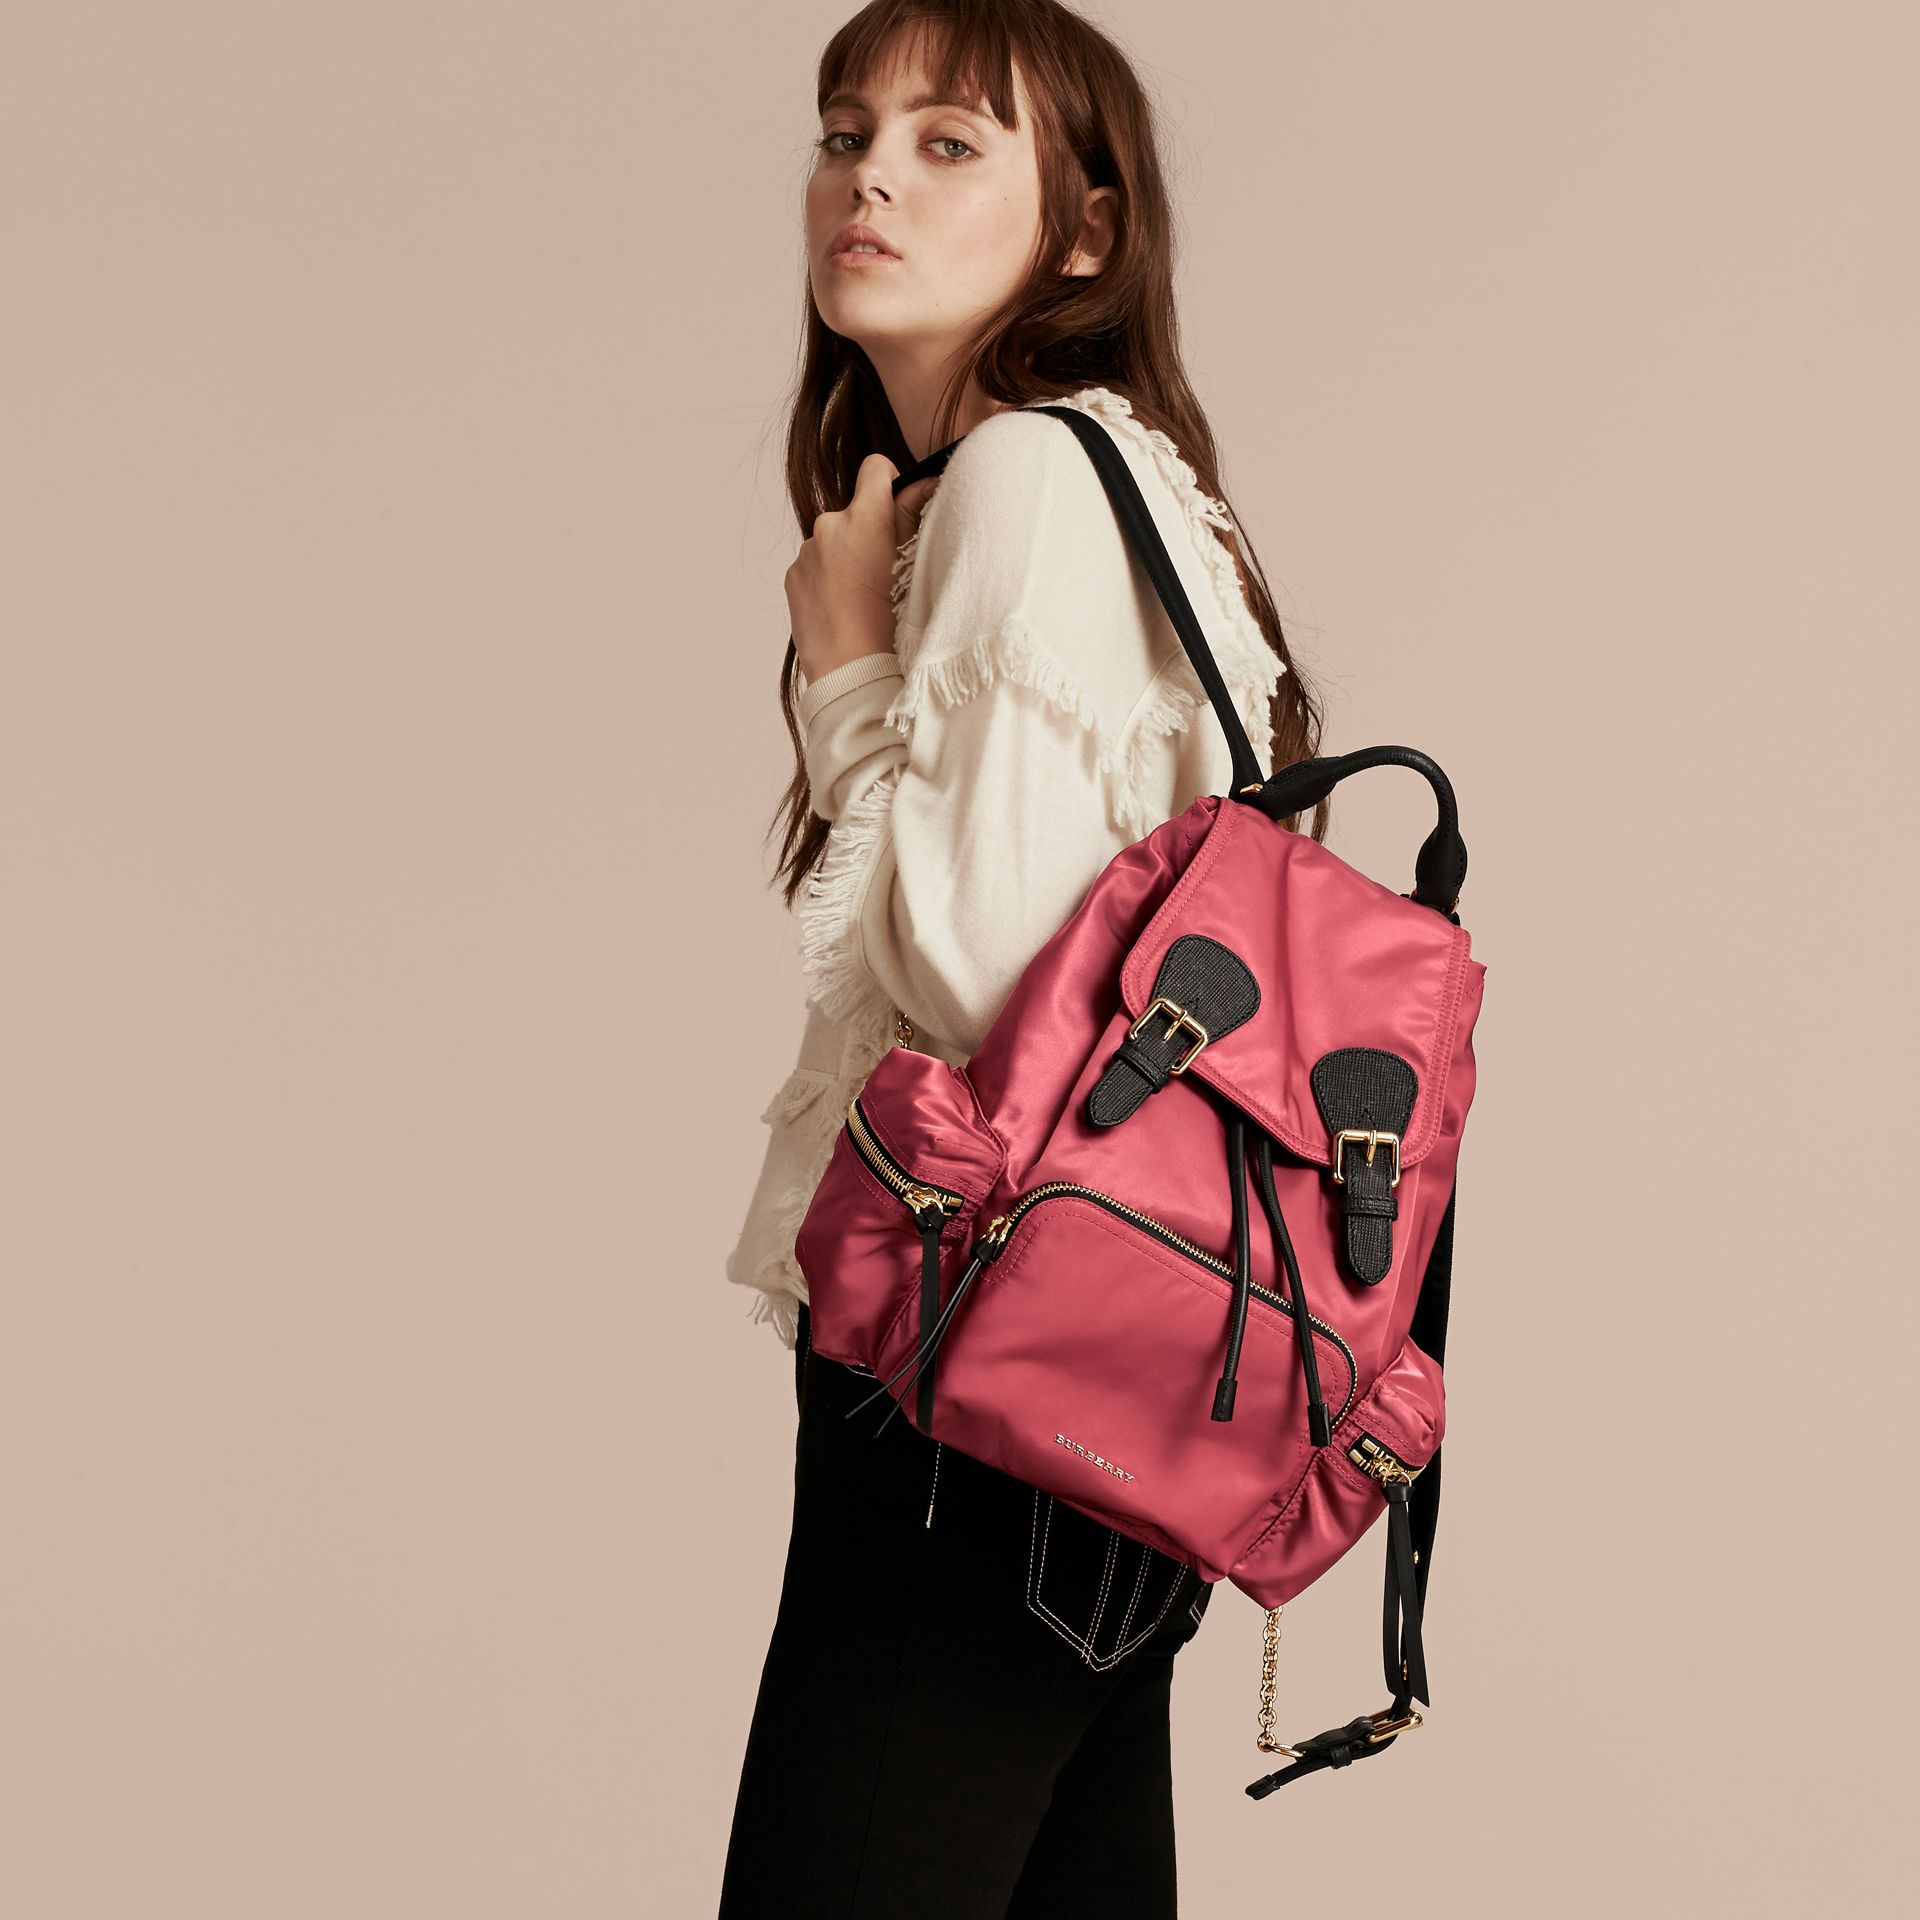 Zaino The Rucksack medio in nylon tecnico e pelle (Rosa Prugna) - Donna | Burberry - immagine della galleria 2